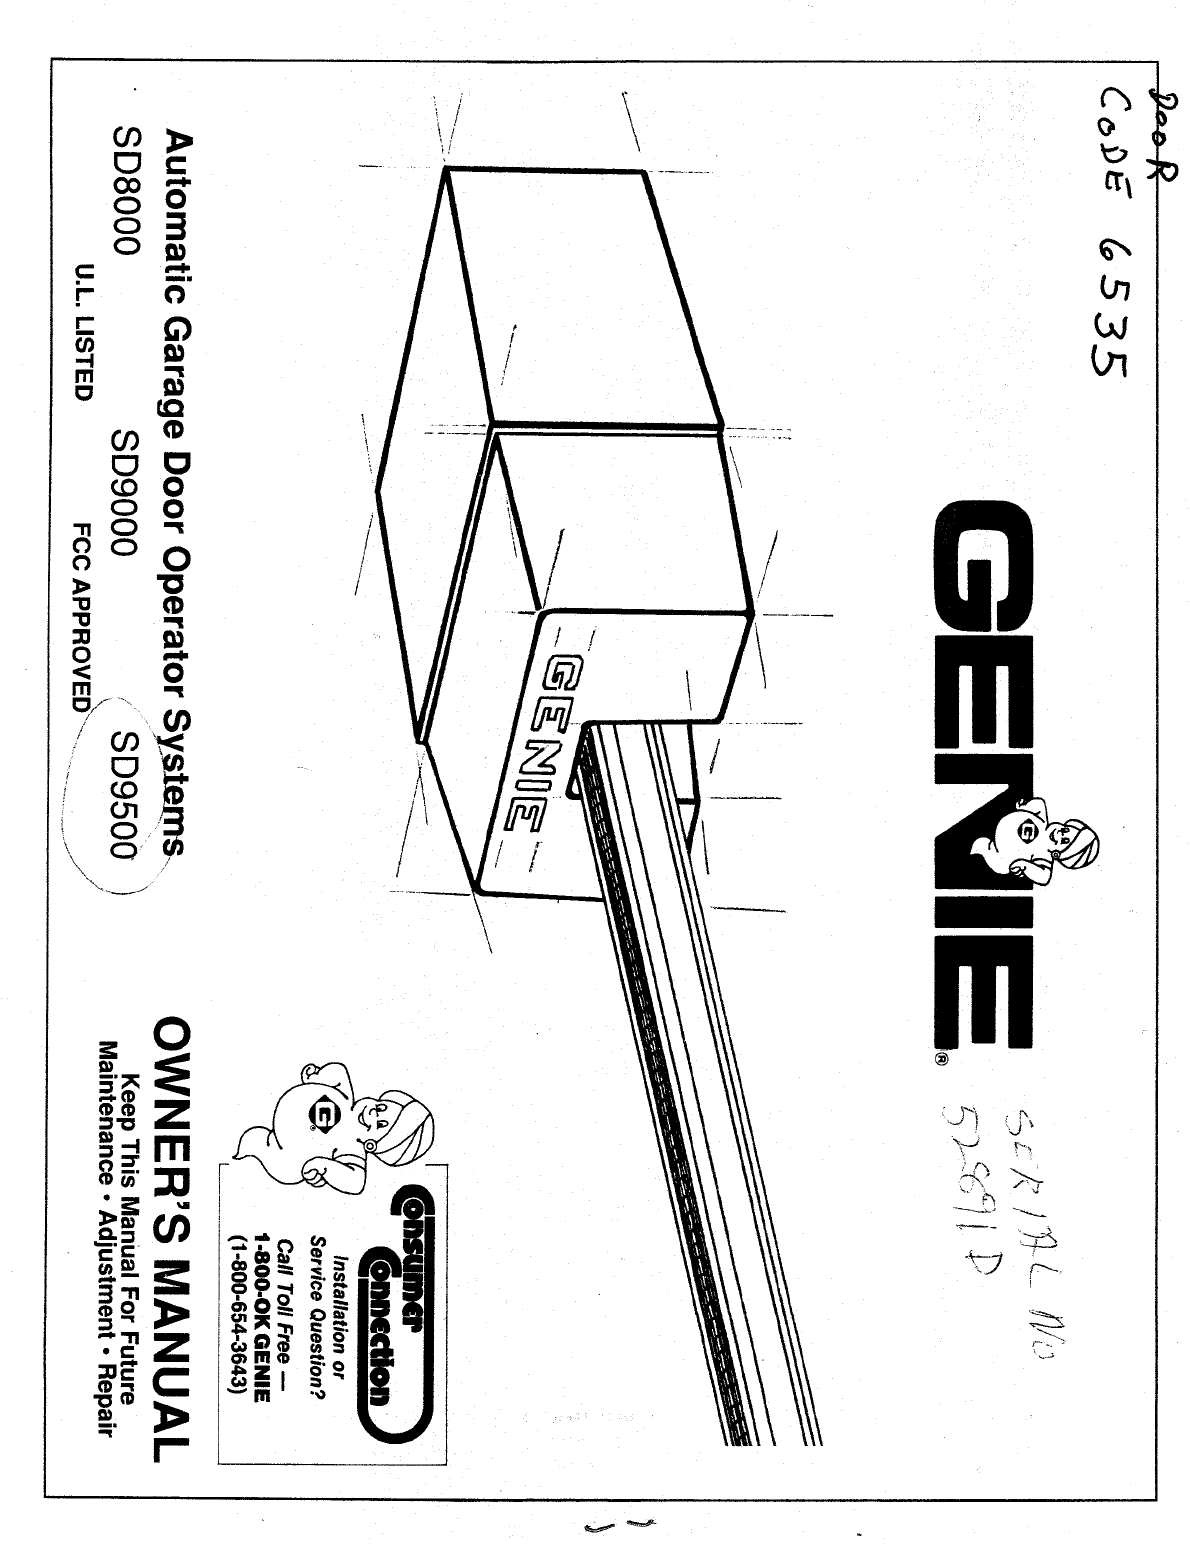 Genie Garage Door Opener Sd User Guide